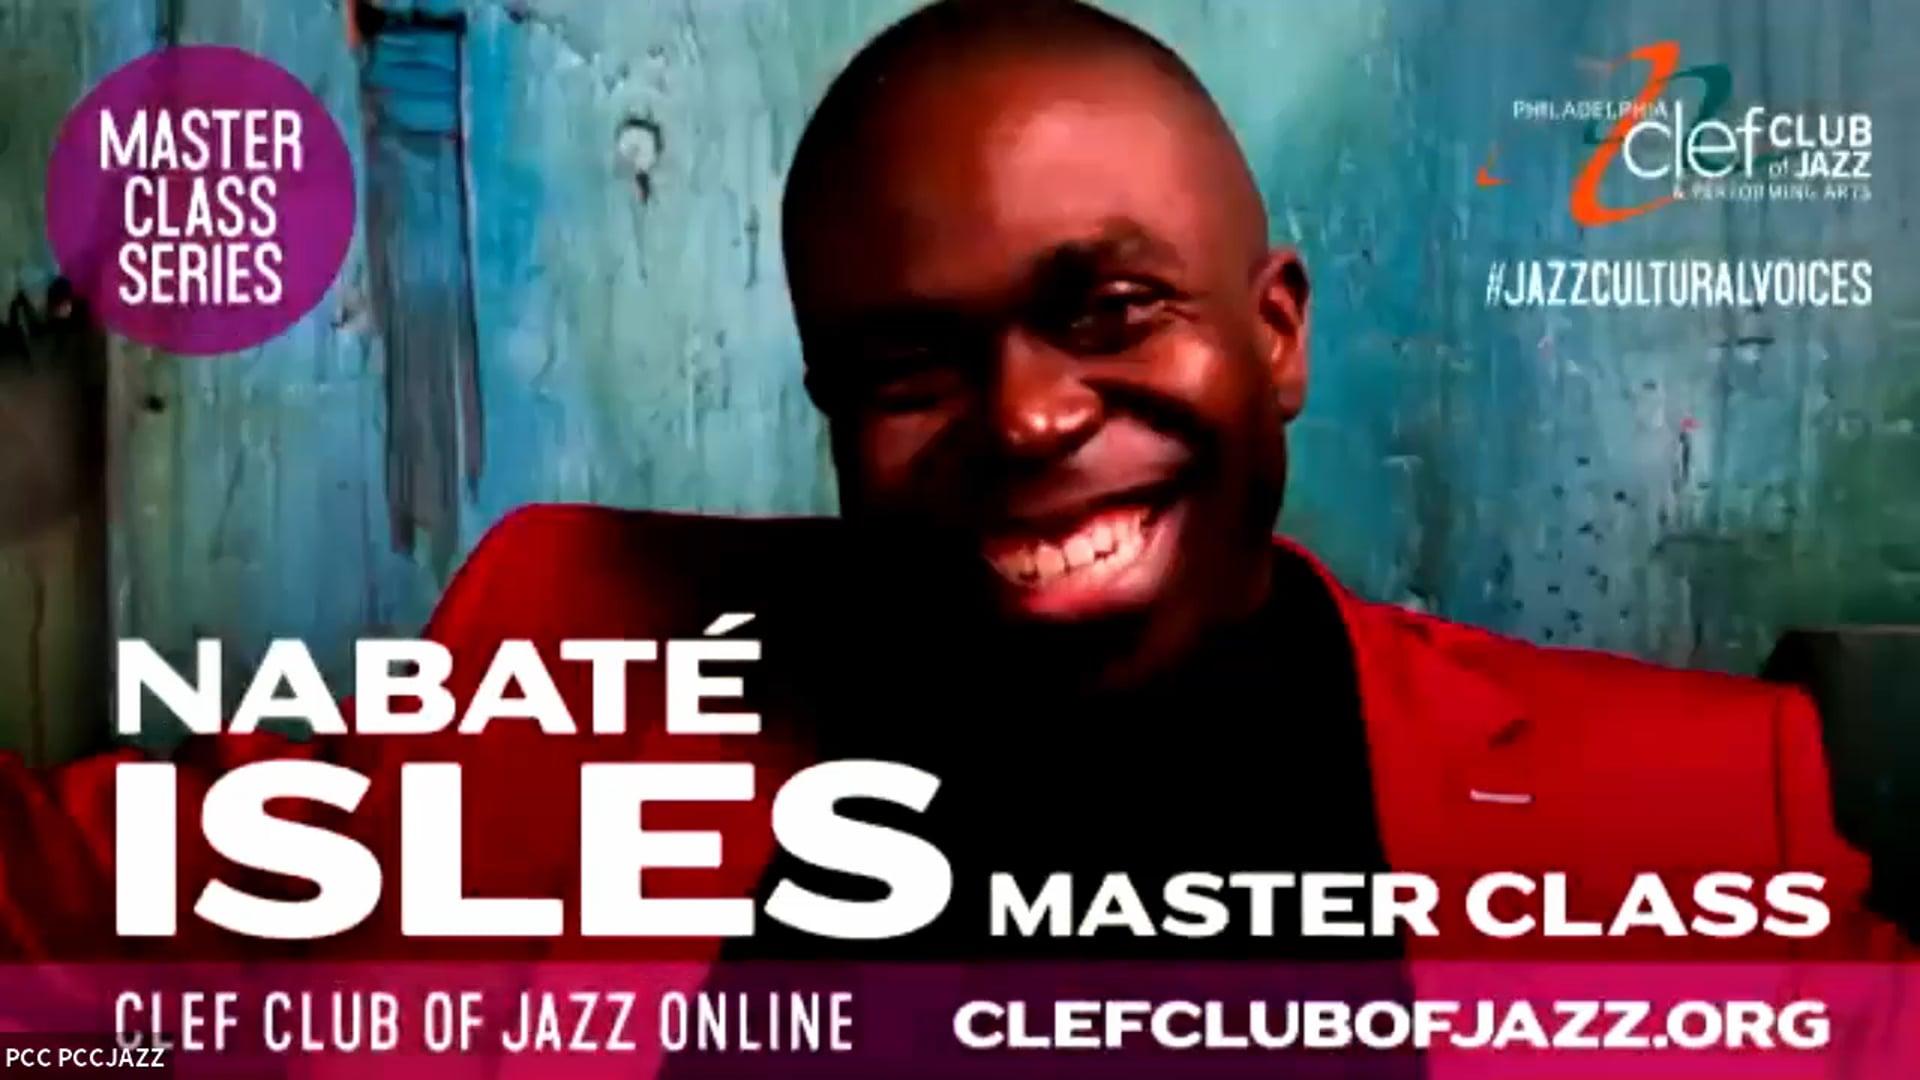 Philadelphia Clef Club of Jazz and Performing Arts Masterclass: Jazz in Film and Television